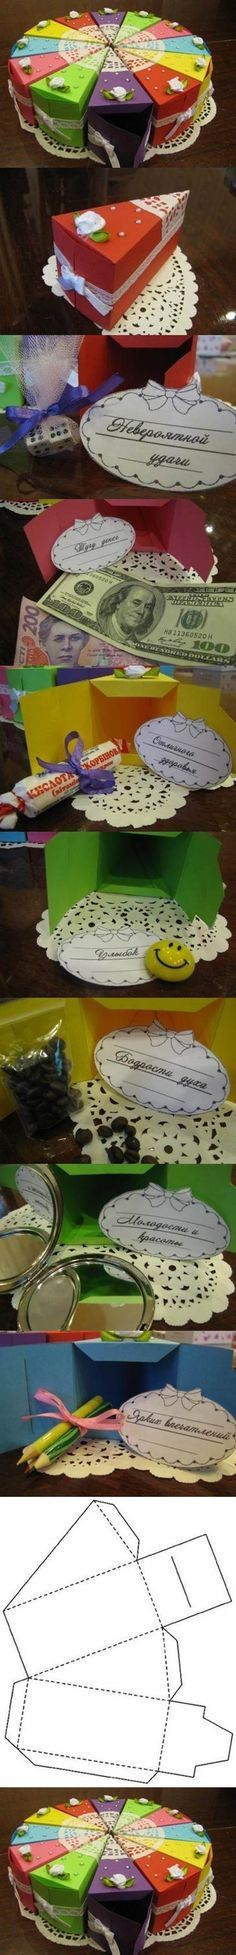 DIY-Cake-Shaped-Gift-Boxes-2 http://www.womans-heaven.com/diy-and-crafts-image-17/